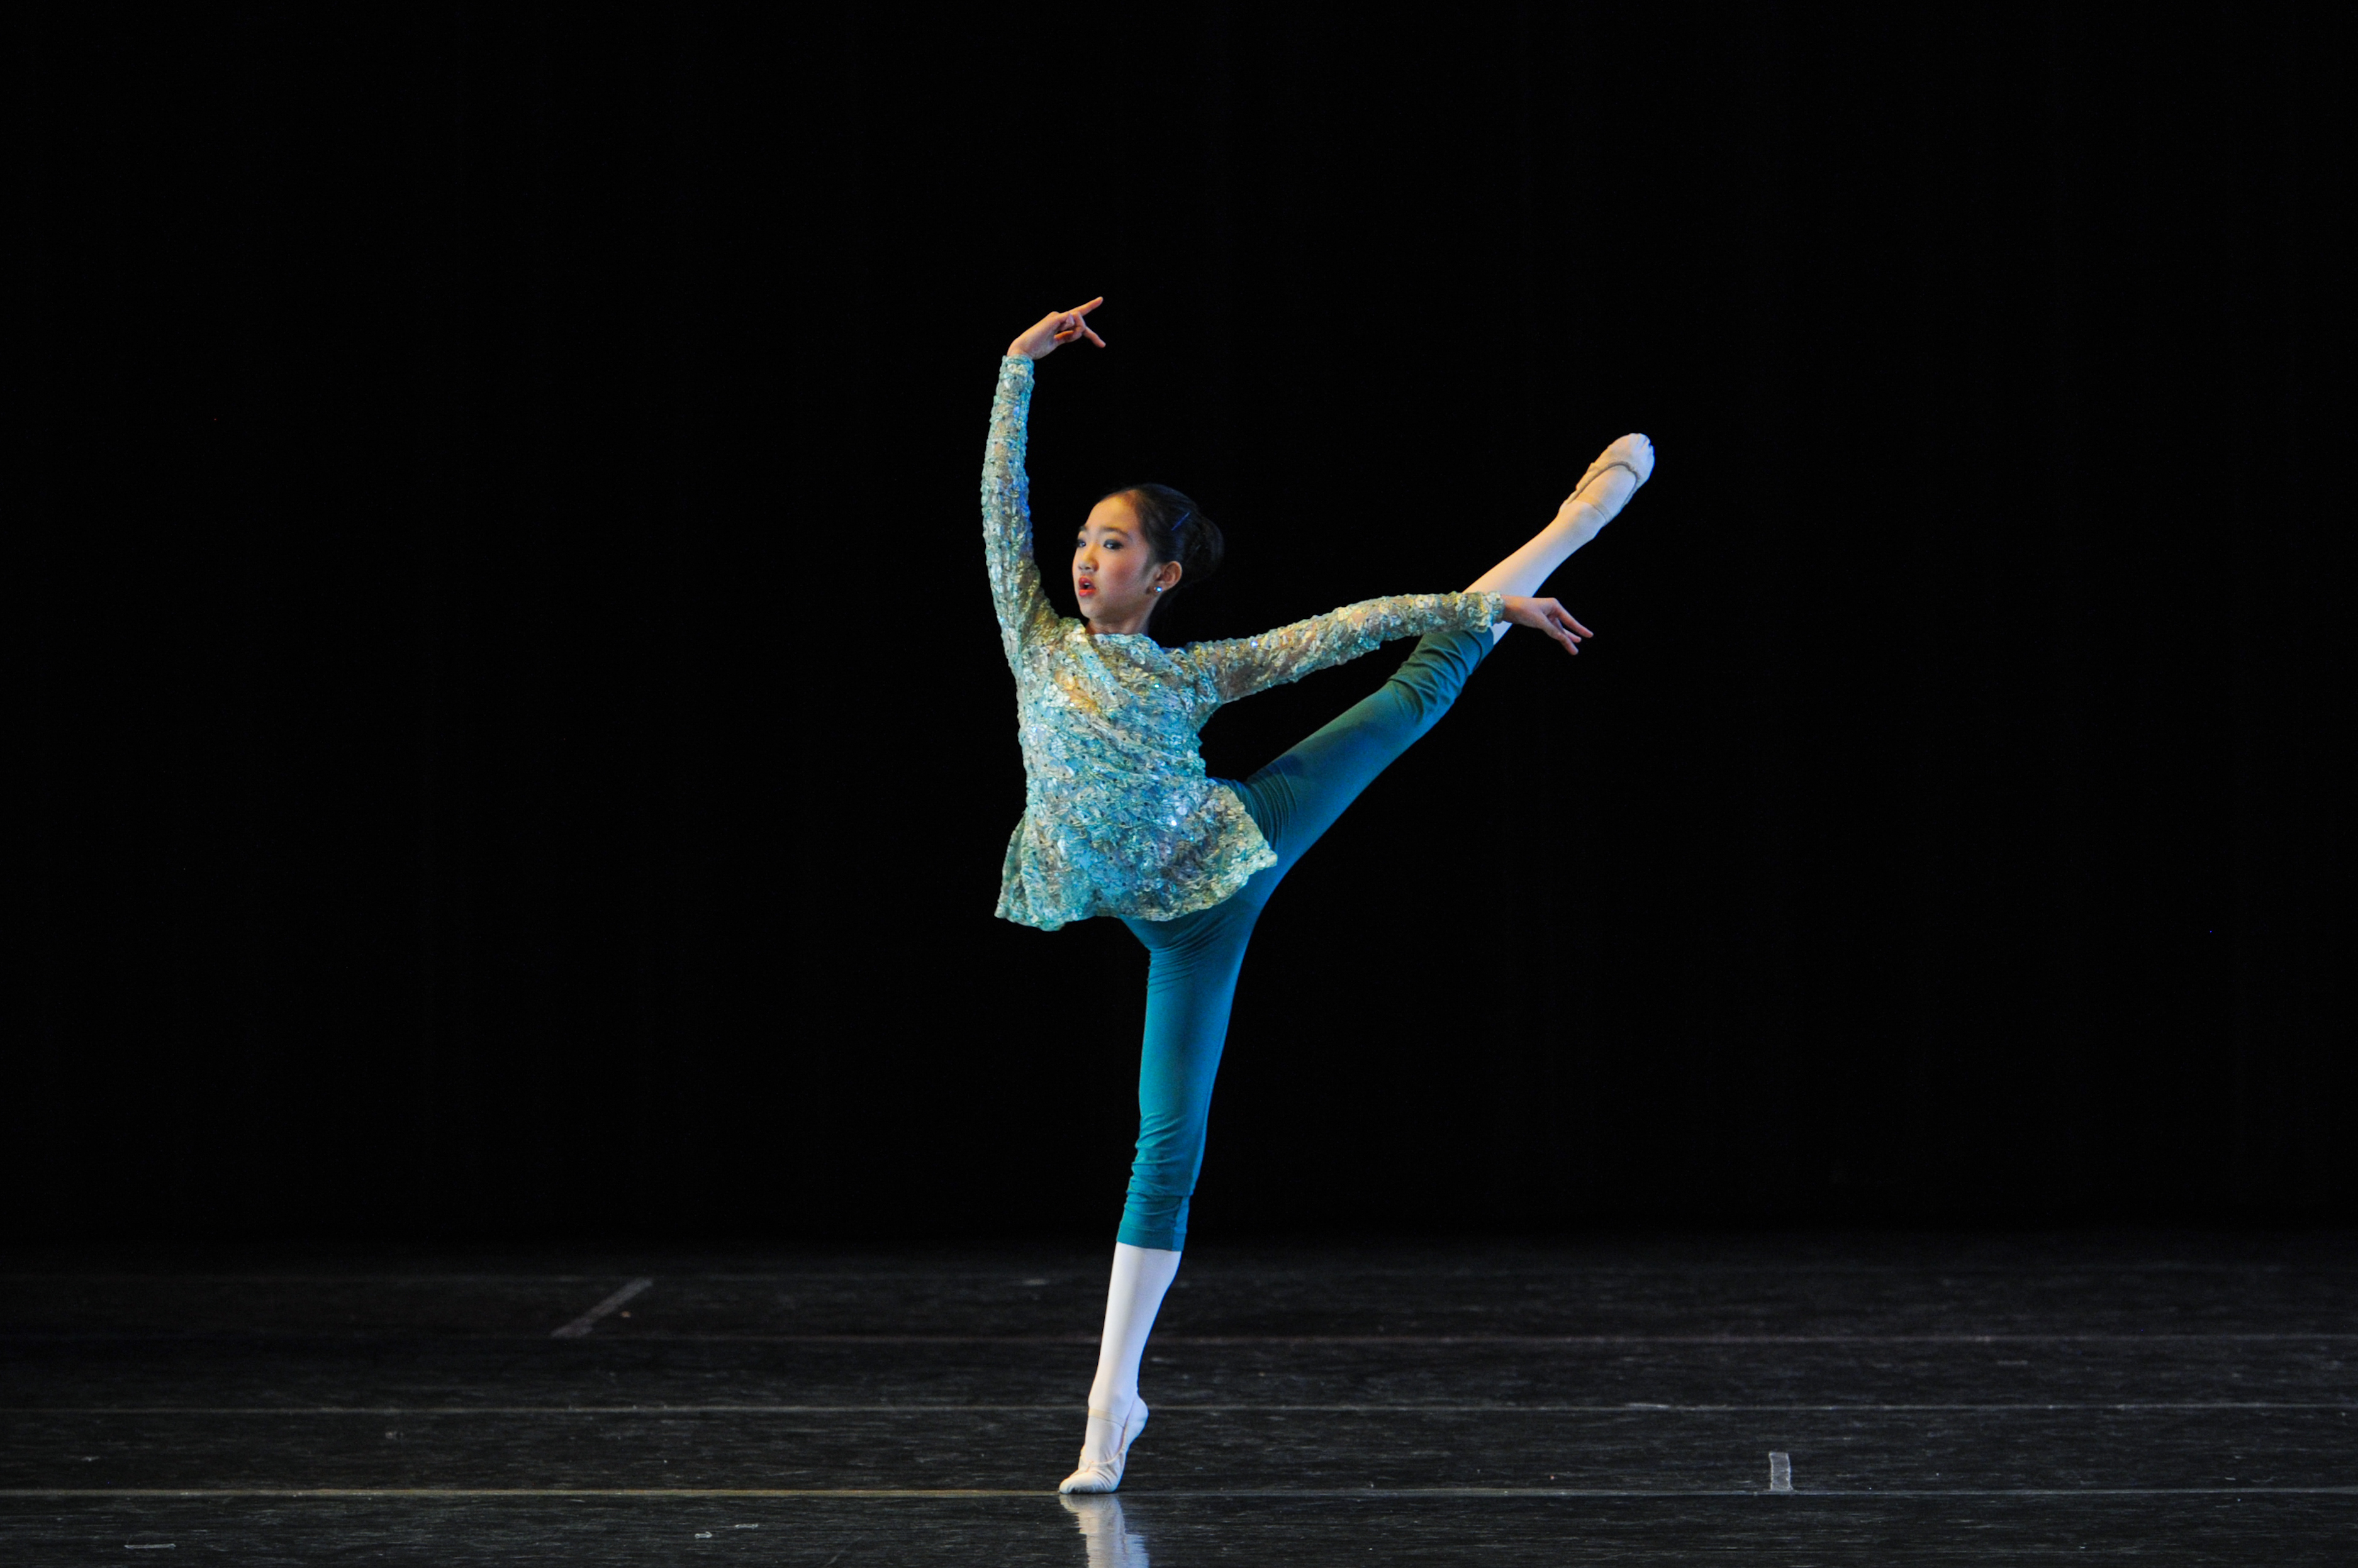 The Nutcracker Ballet--beloved by children, supported by adults, an opportunity for young ballet students to dance and traipse the boards. Ah, the Nutcracker!